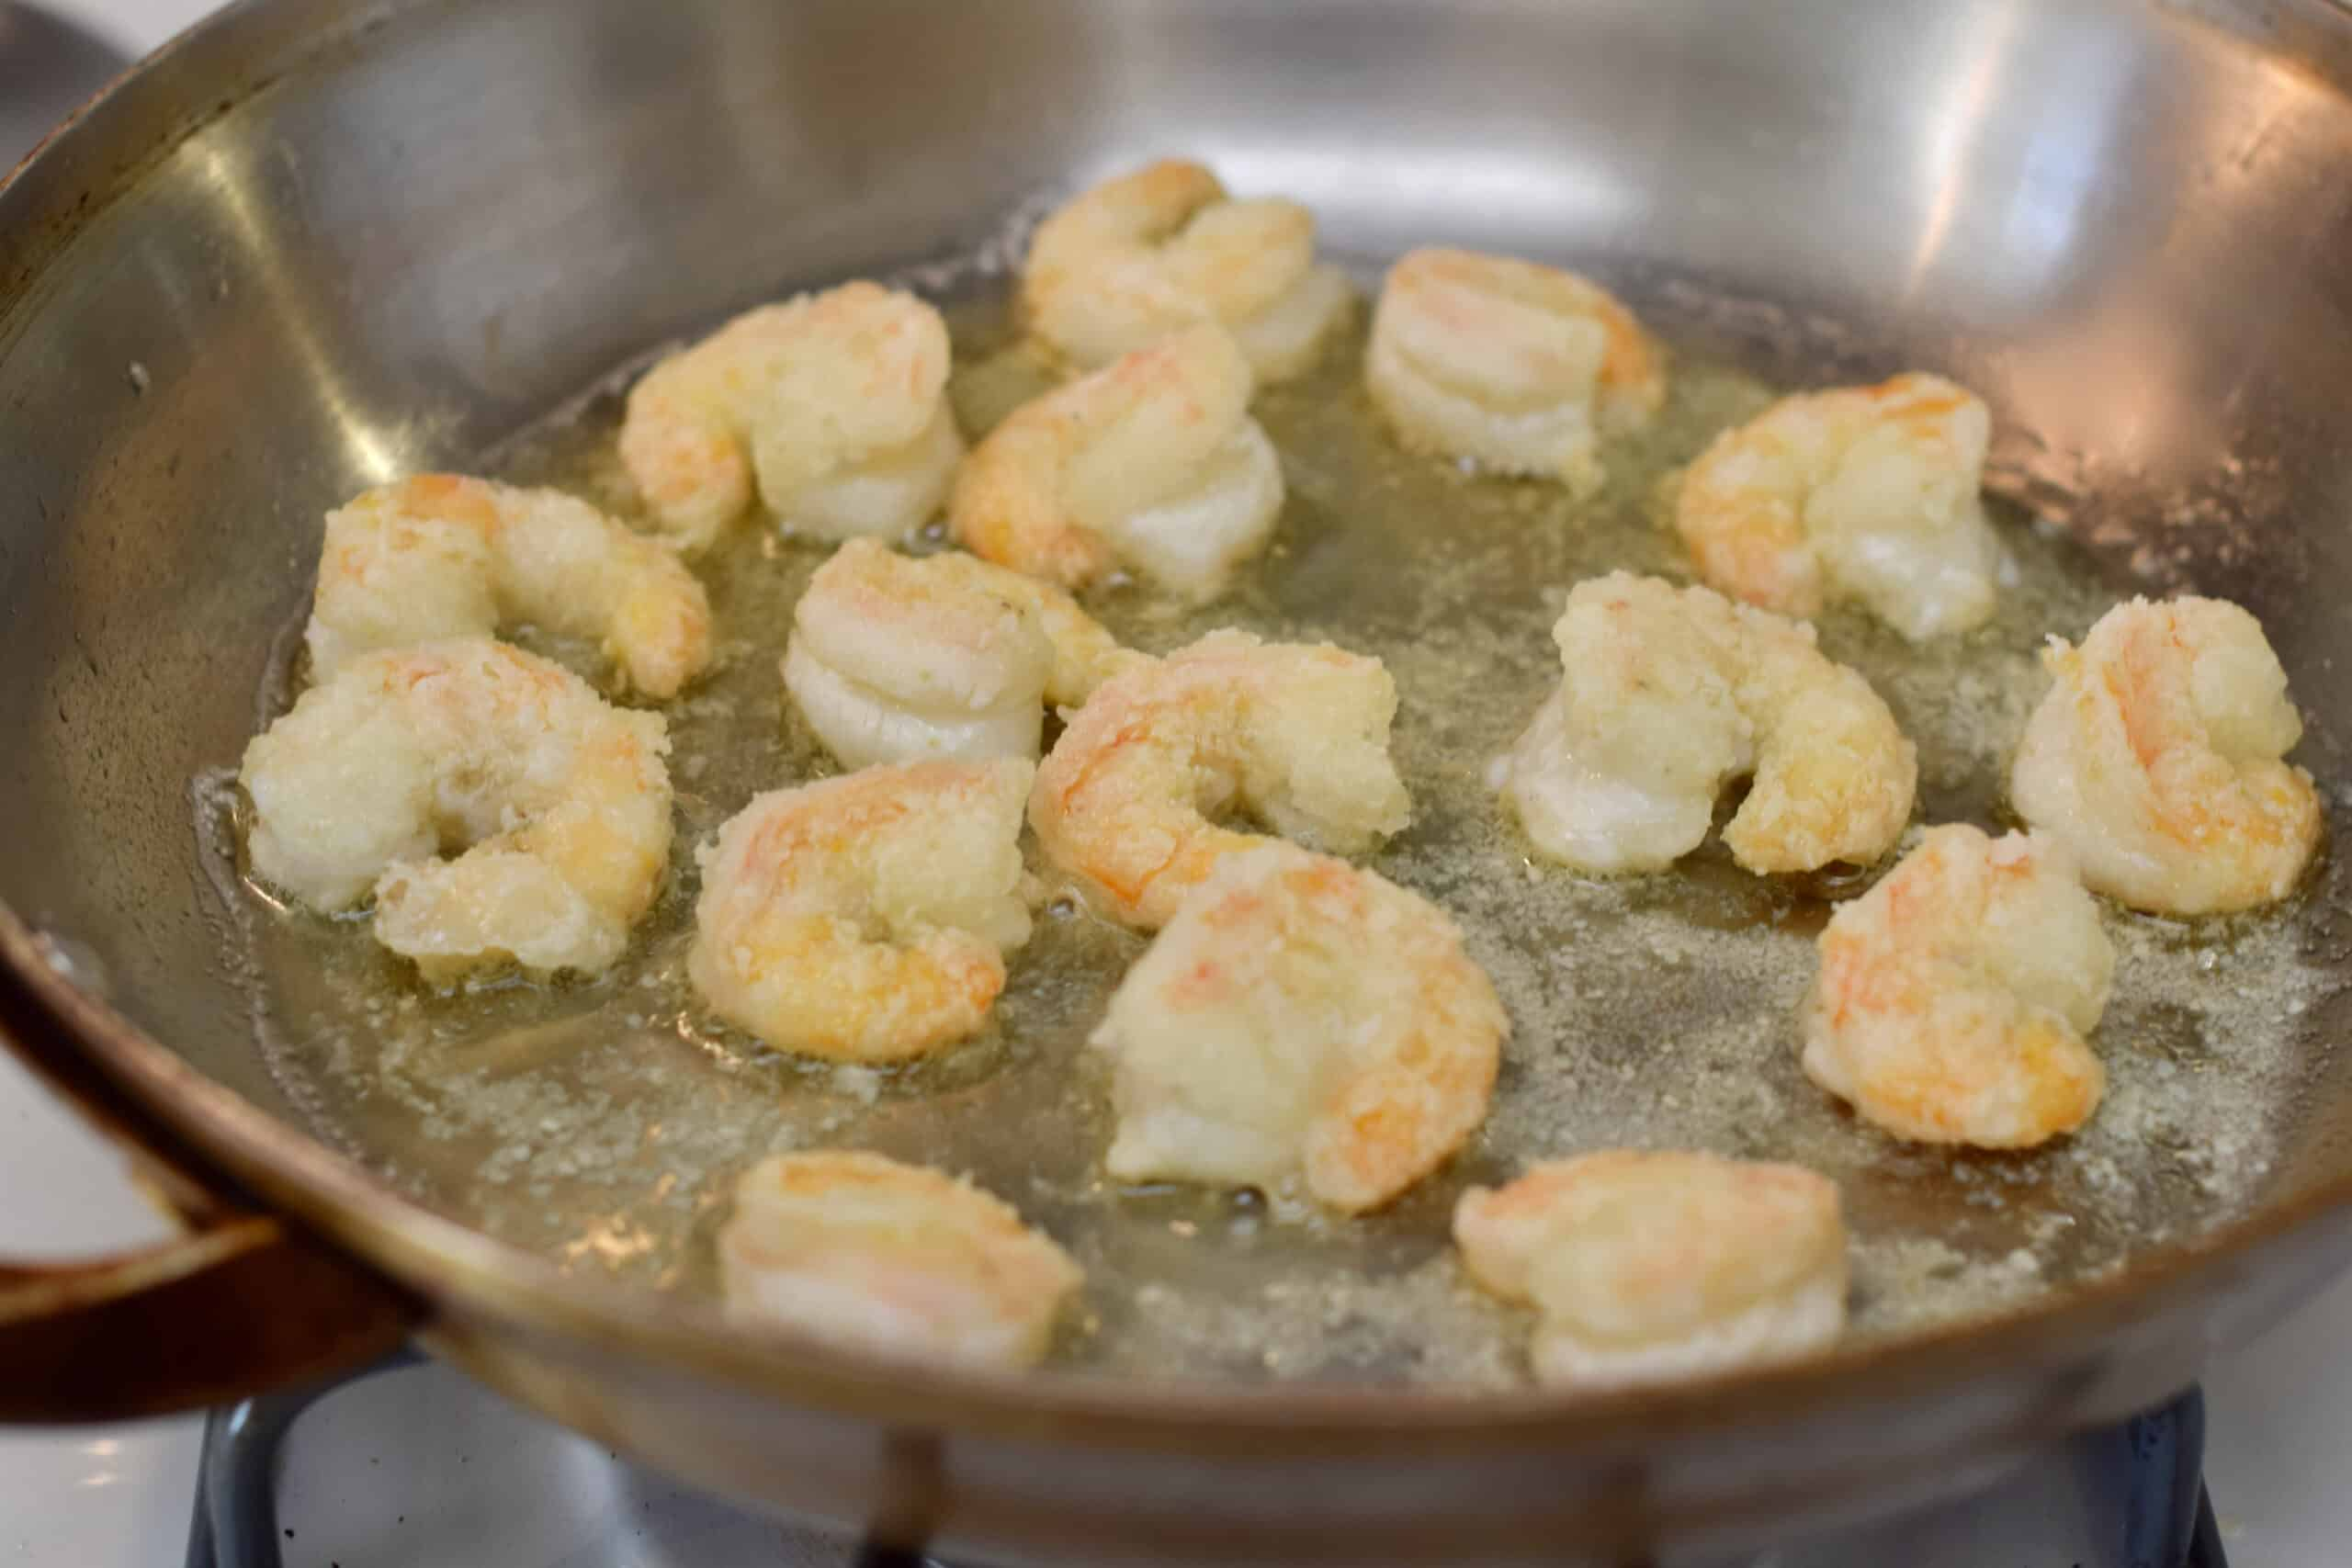 A frying pan containing some perfectly cooked crisp shrimp.